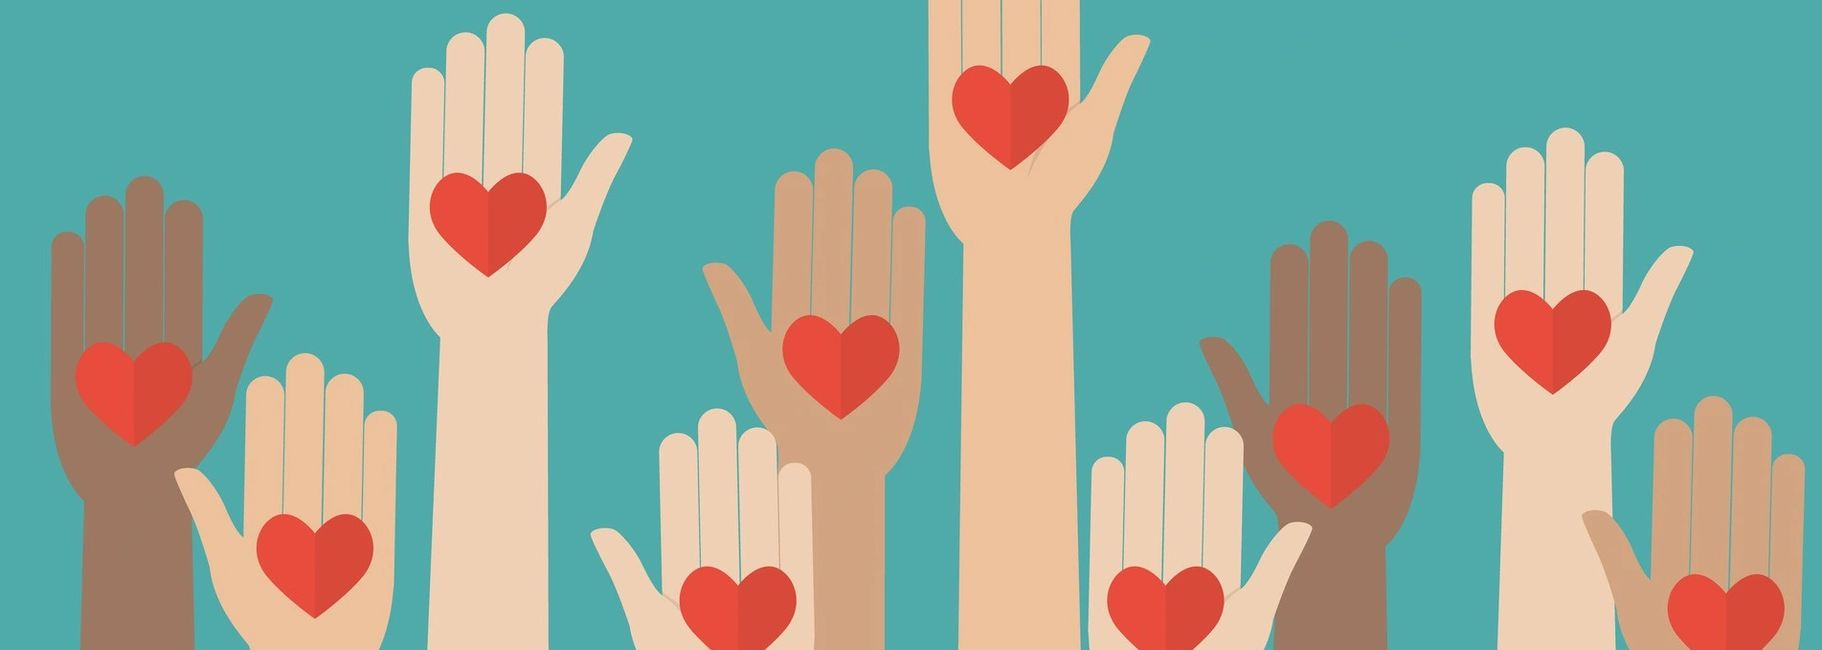 Hands reach up in a variety of skin tones. Each hand holds a heart. The background is turquoise.